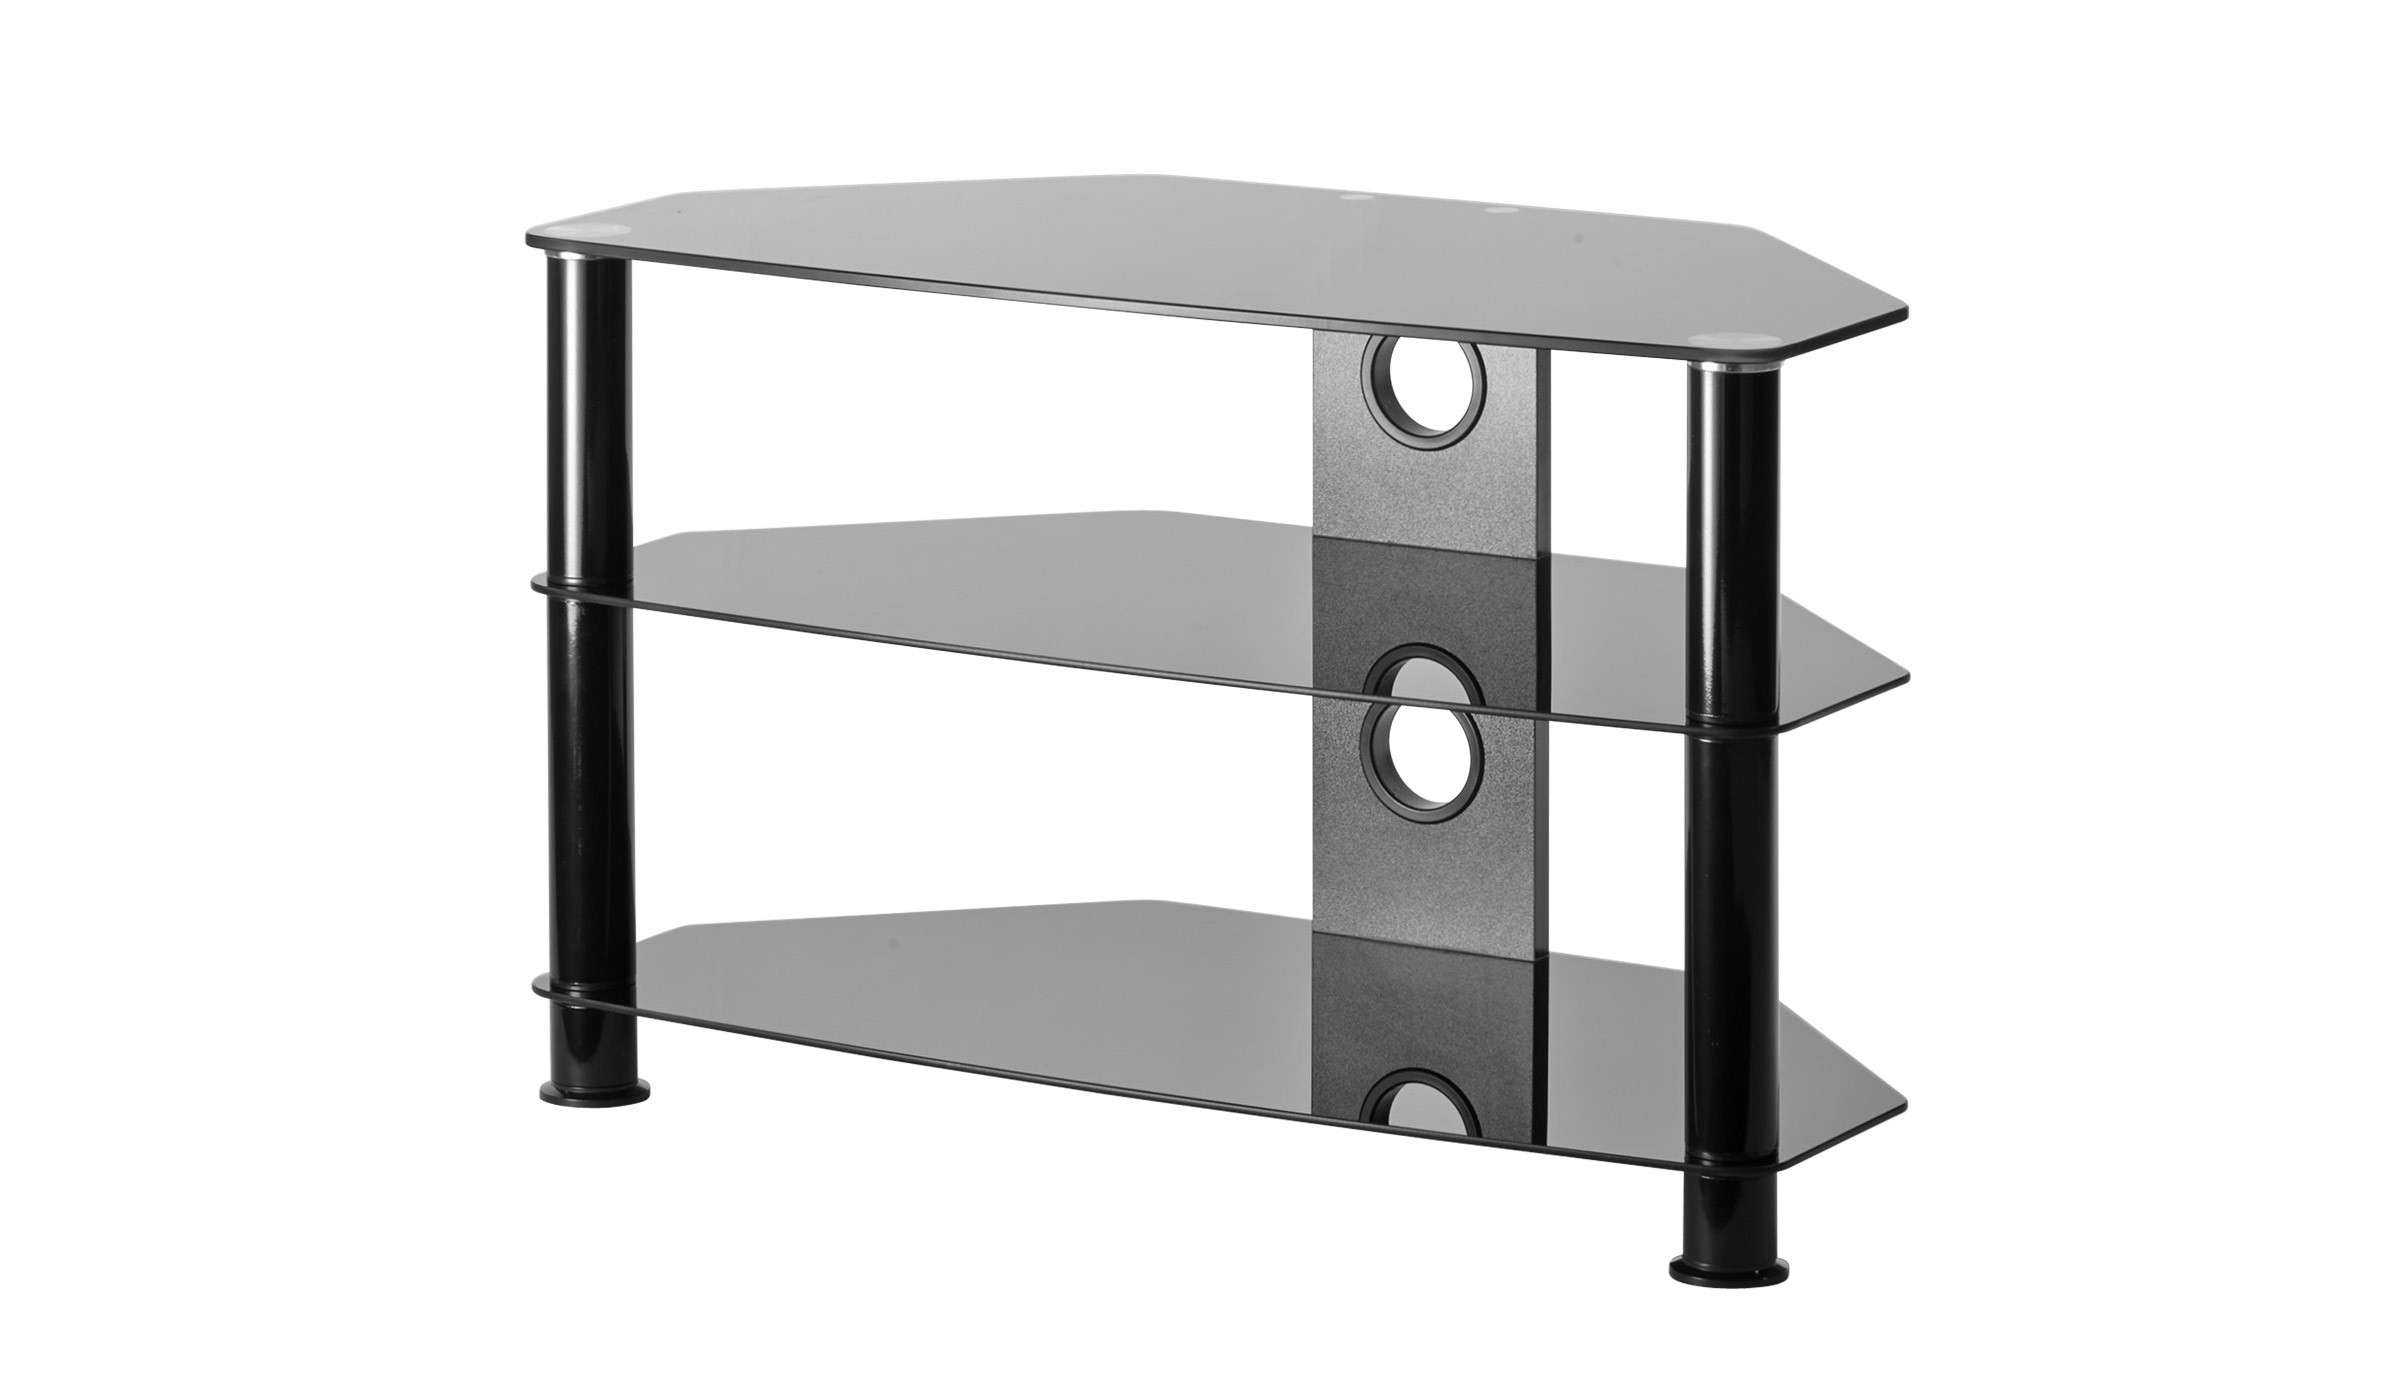 Black Glass Corner Tv Stand Up To 37 Inch Tv | Mmt Db800 Throughout Glass Tv Stands (View 5 of 15)